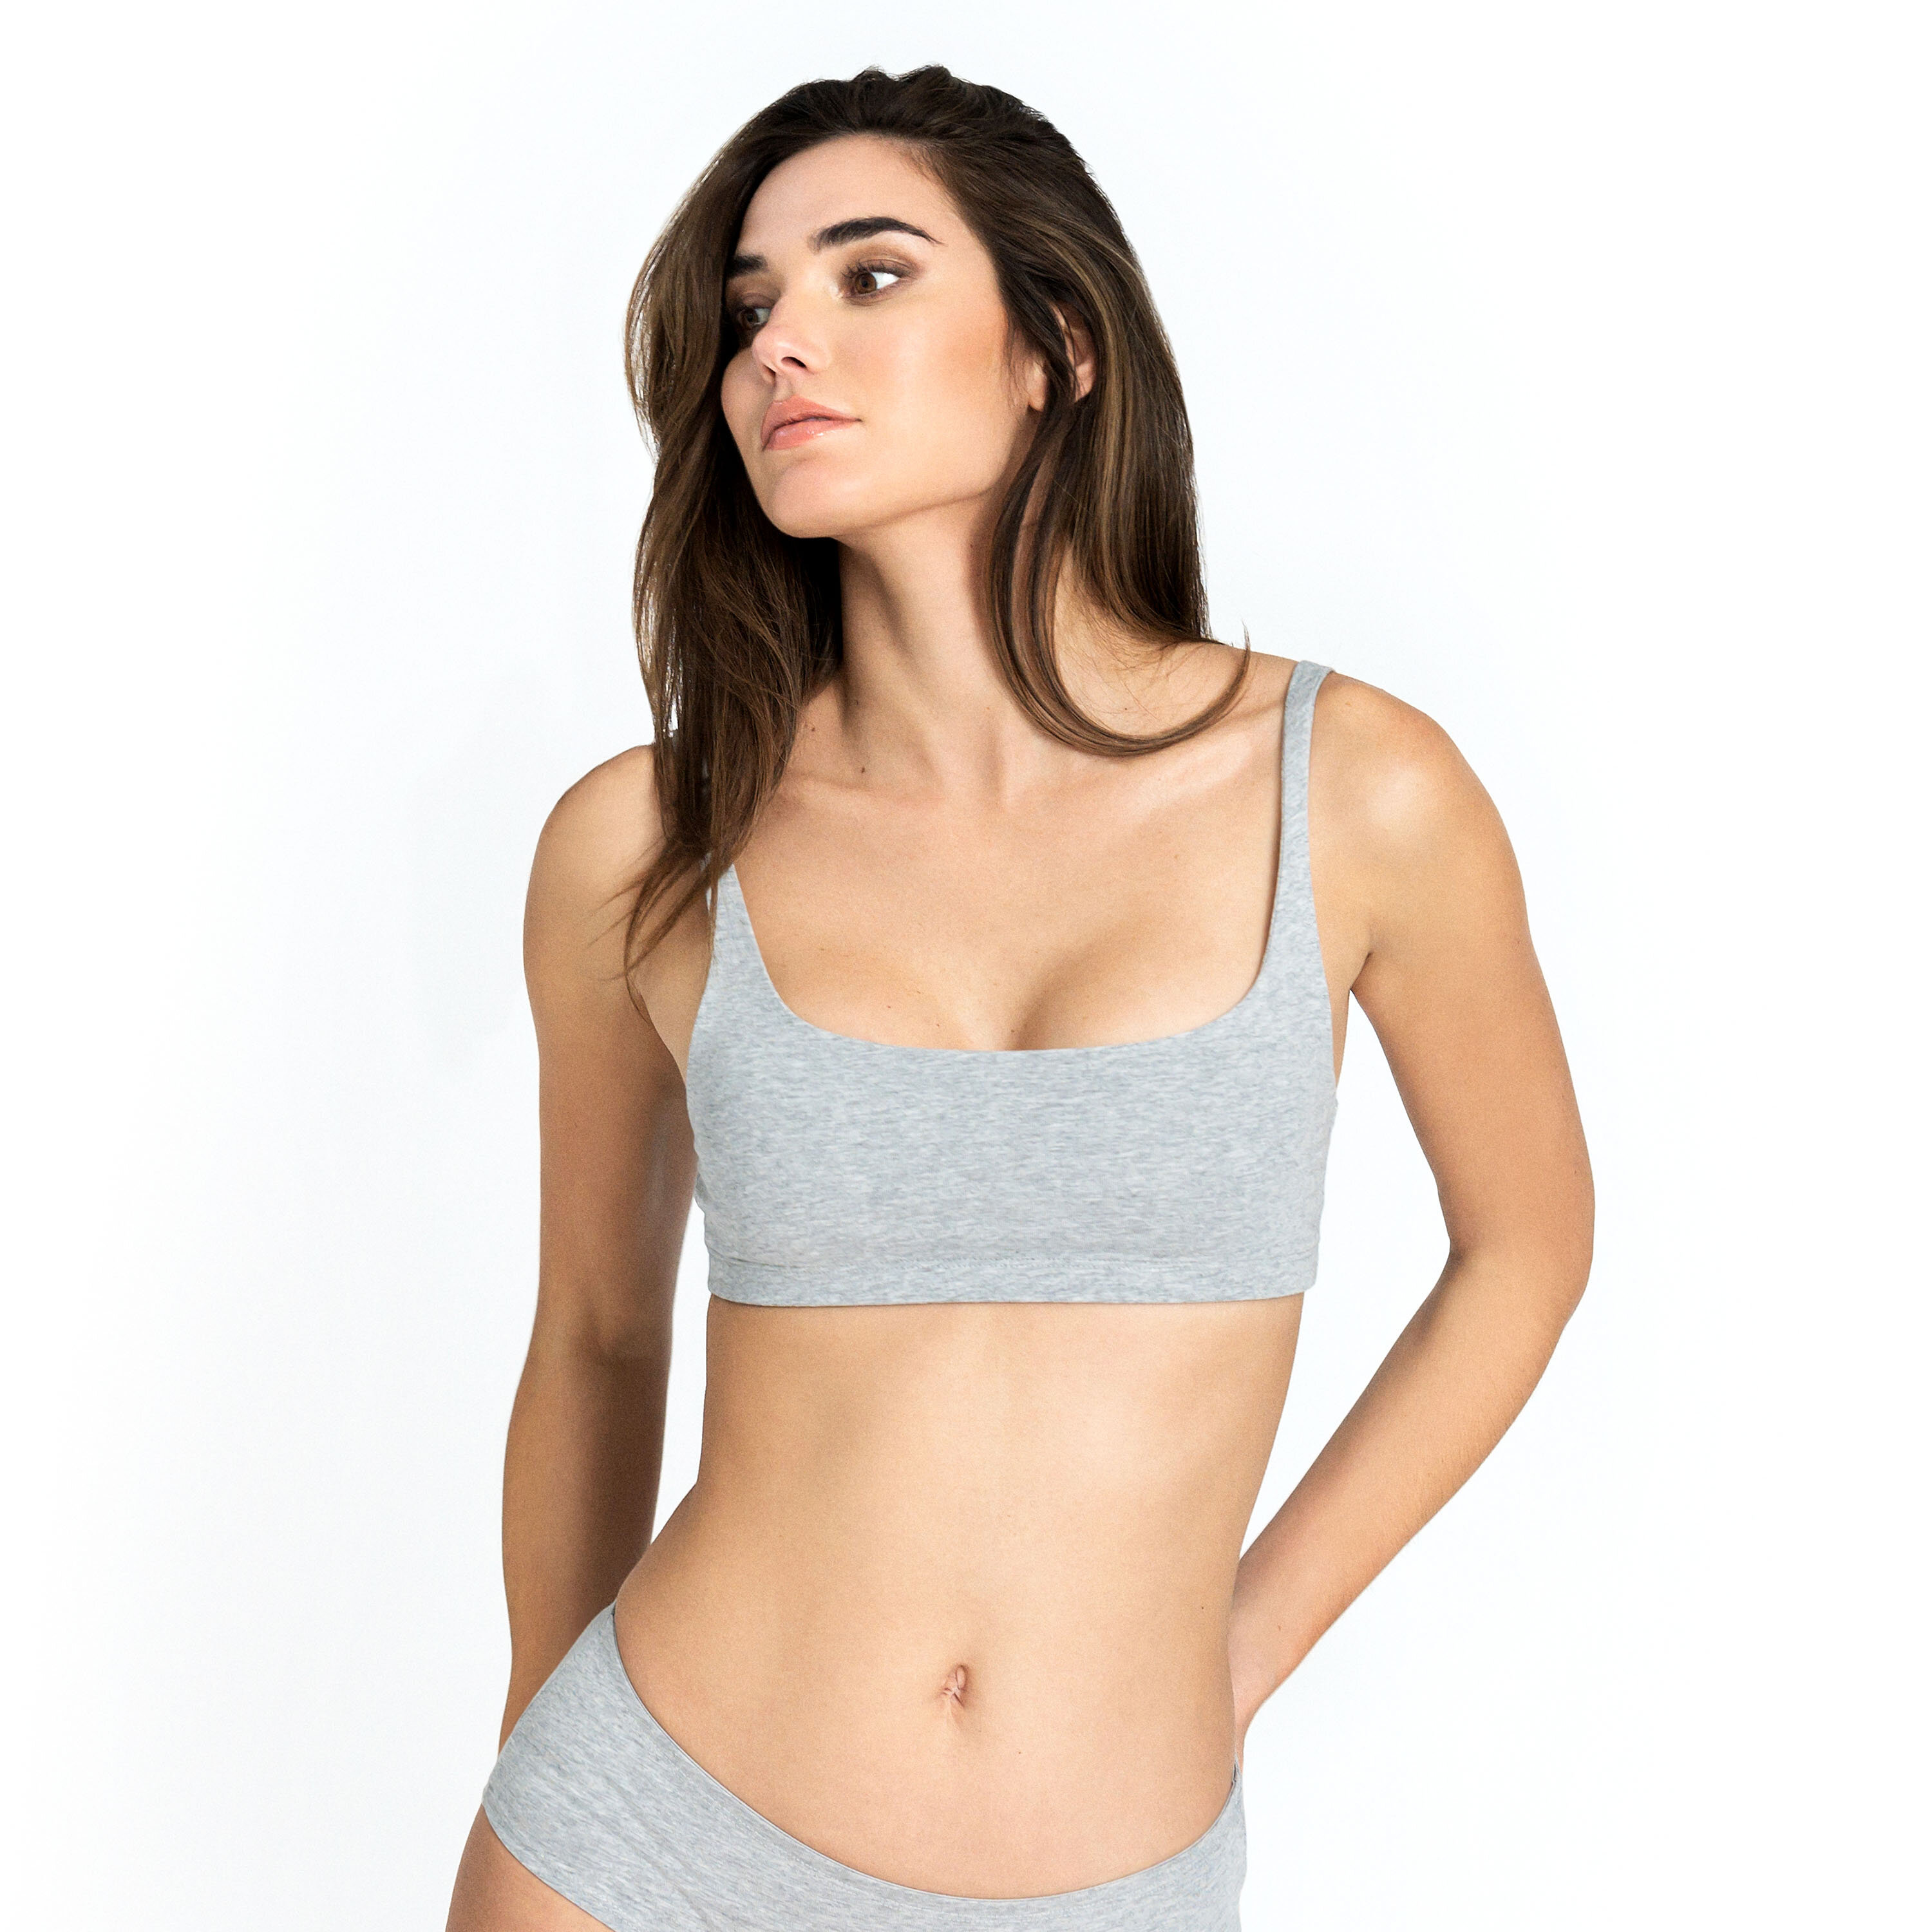 621103_Soft_Bra_grey-melange_1B